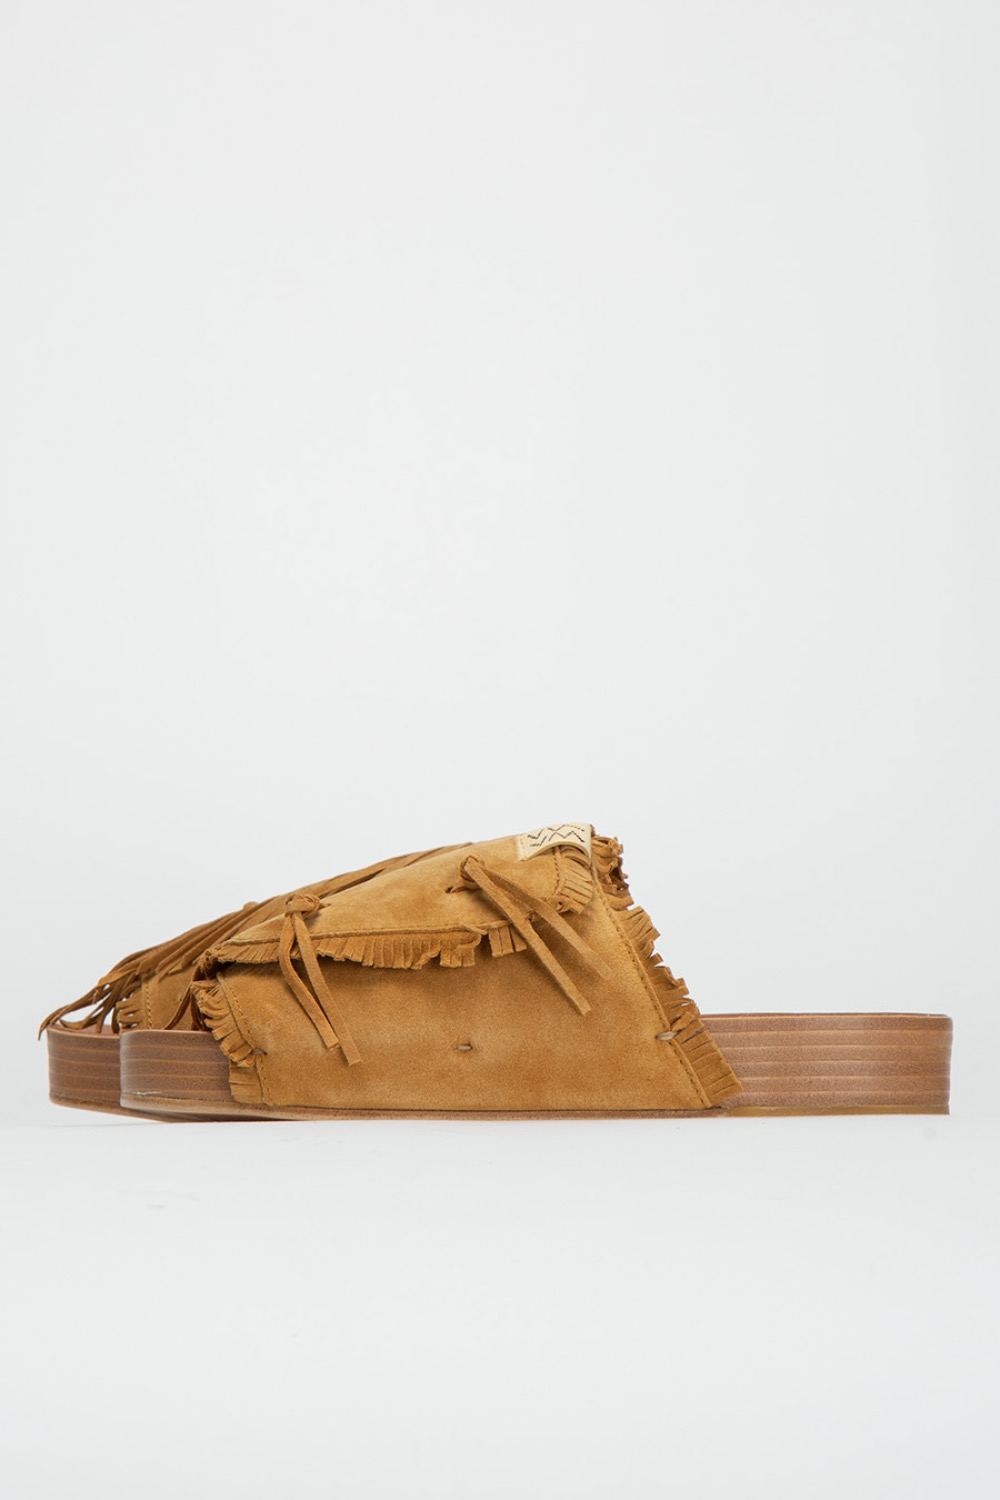 CHRISTO SHAMAN-FOLK LIGHT BROWN